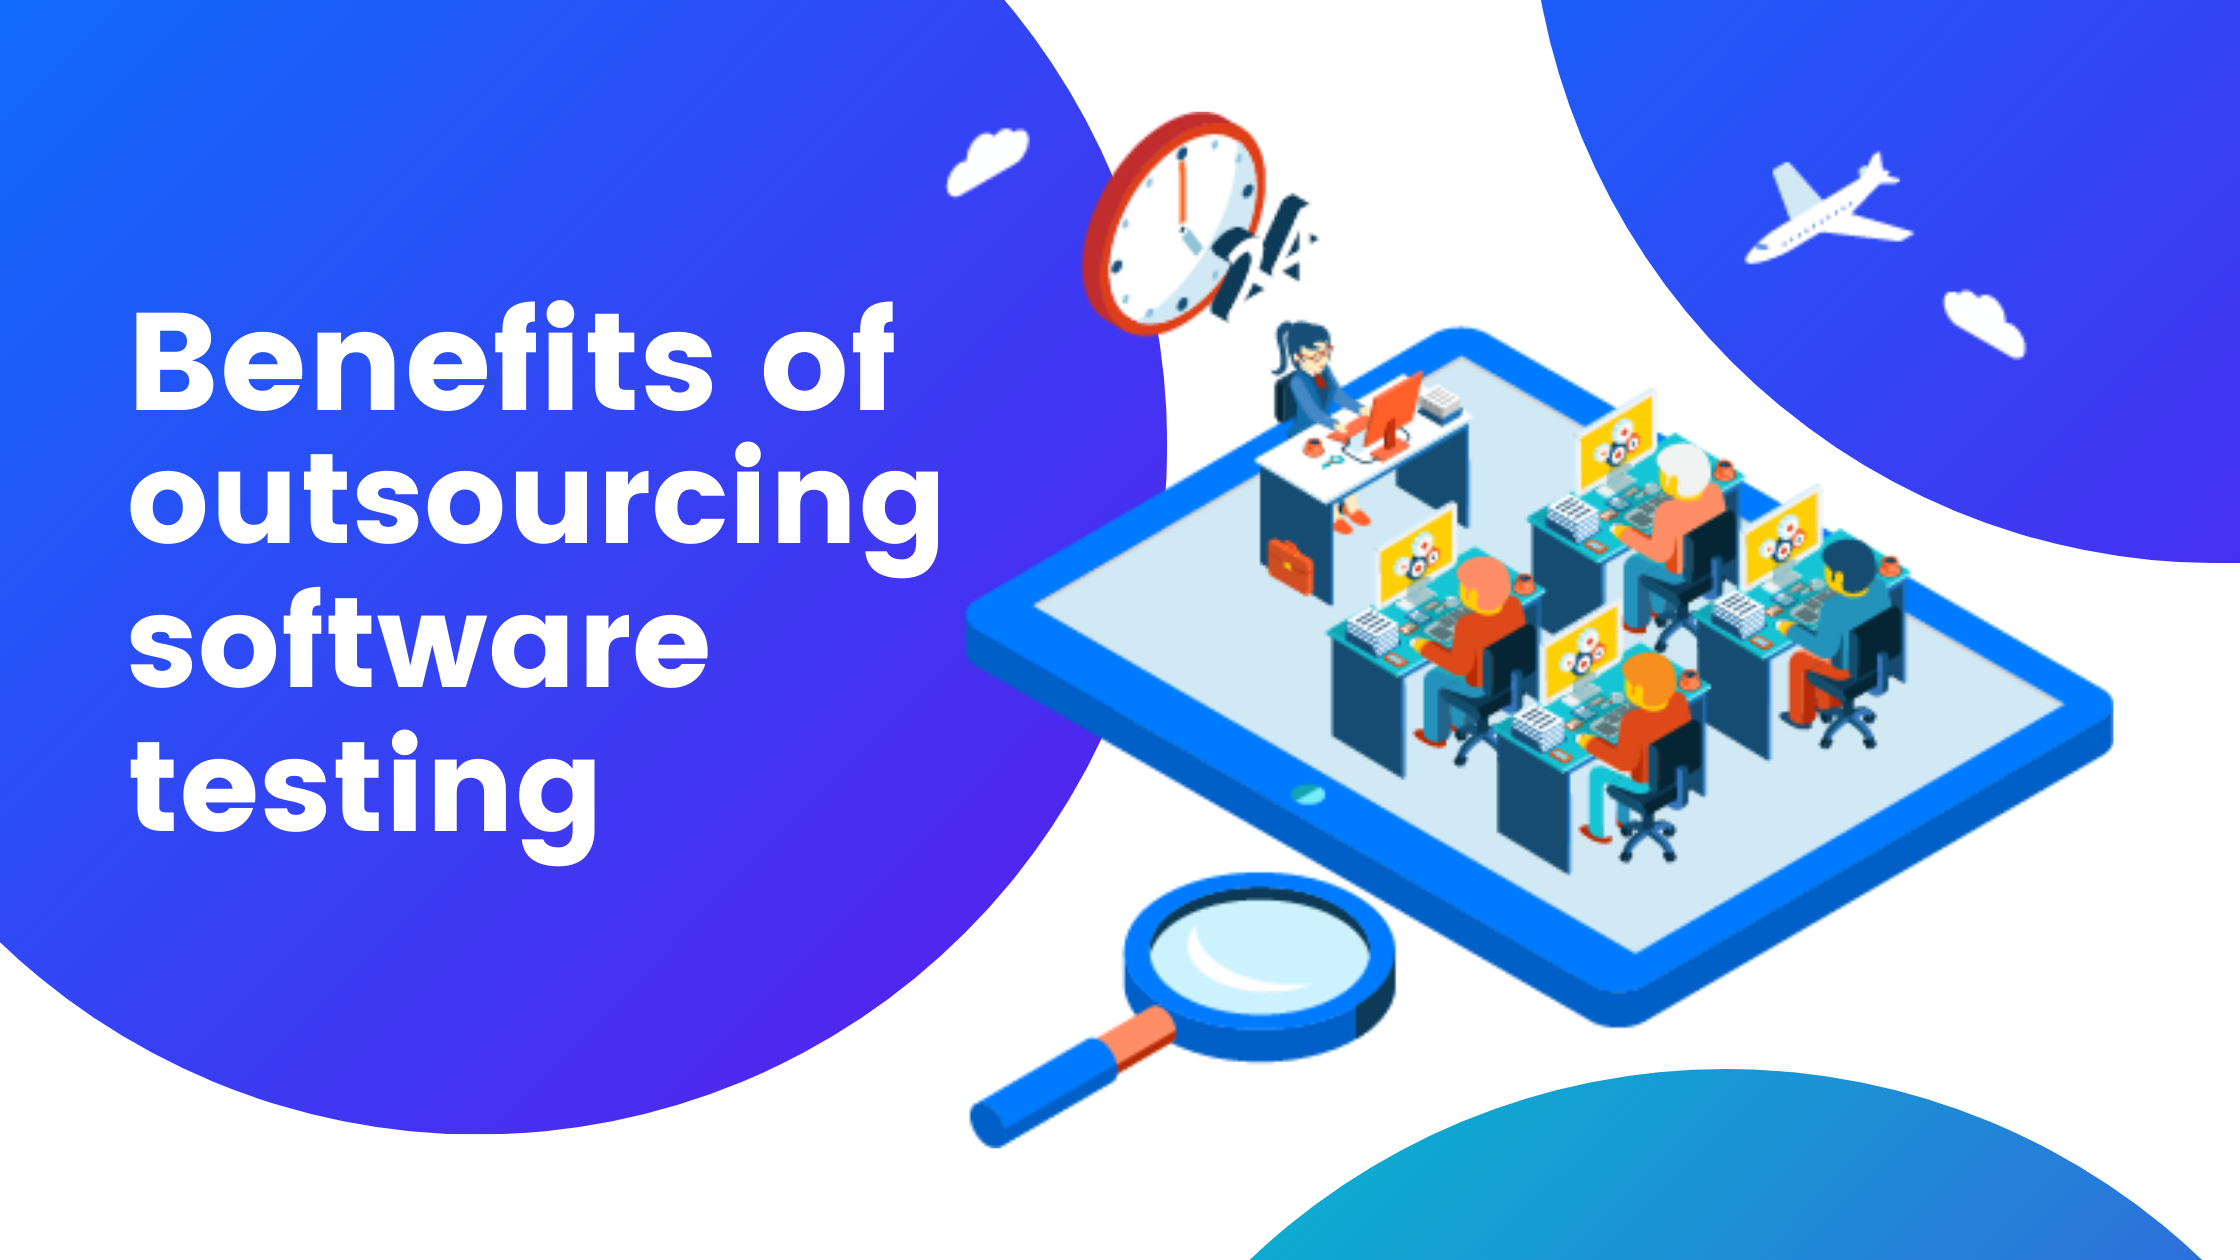 Benefits of outsourcing software testing